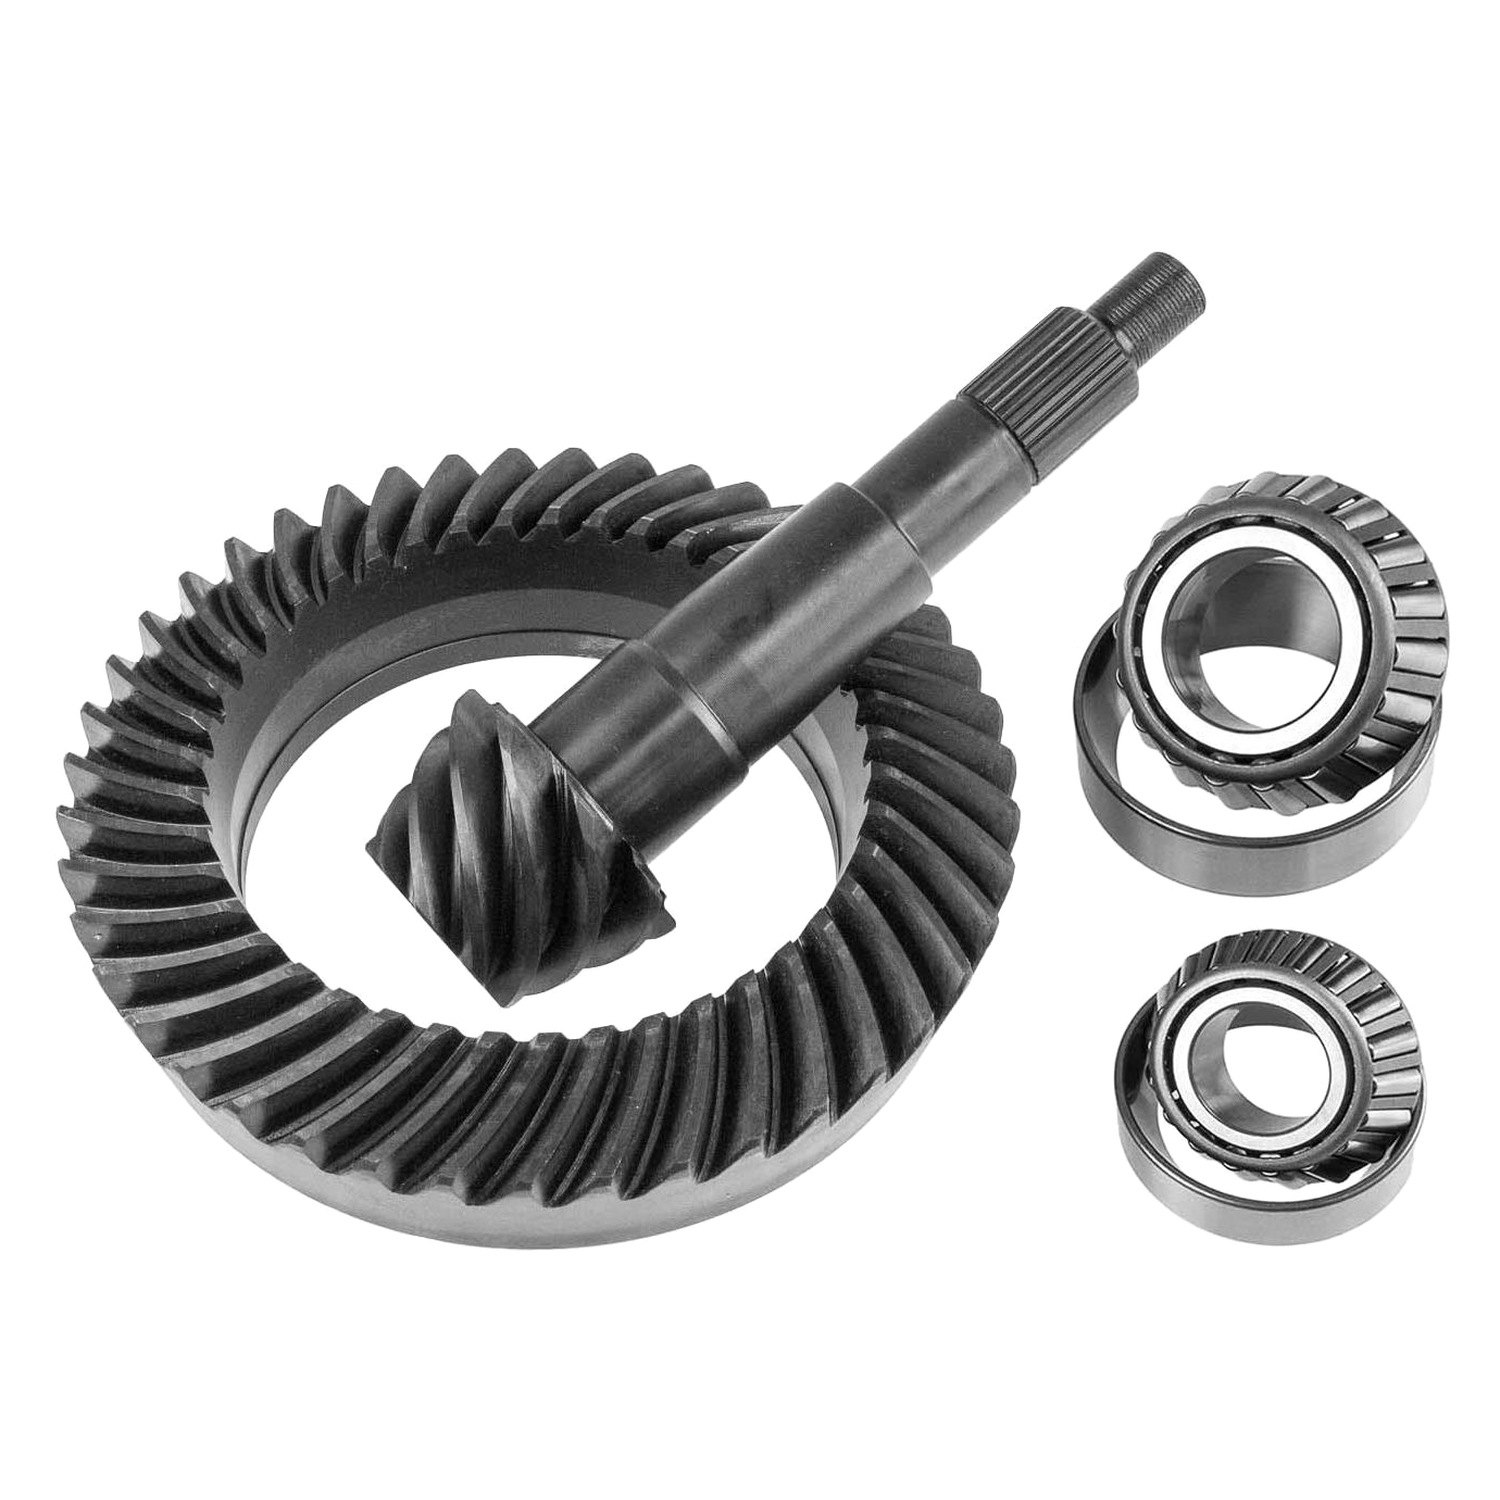 richmond ring and pinion break in relationship